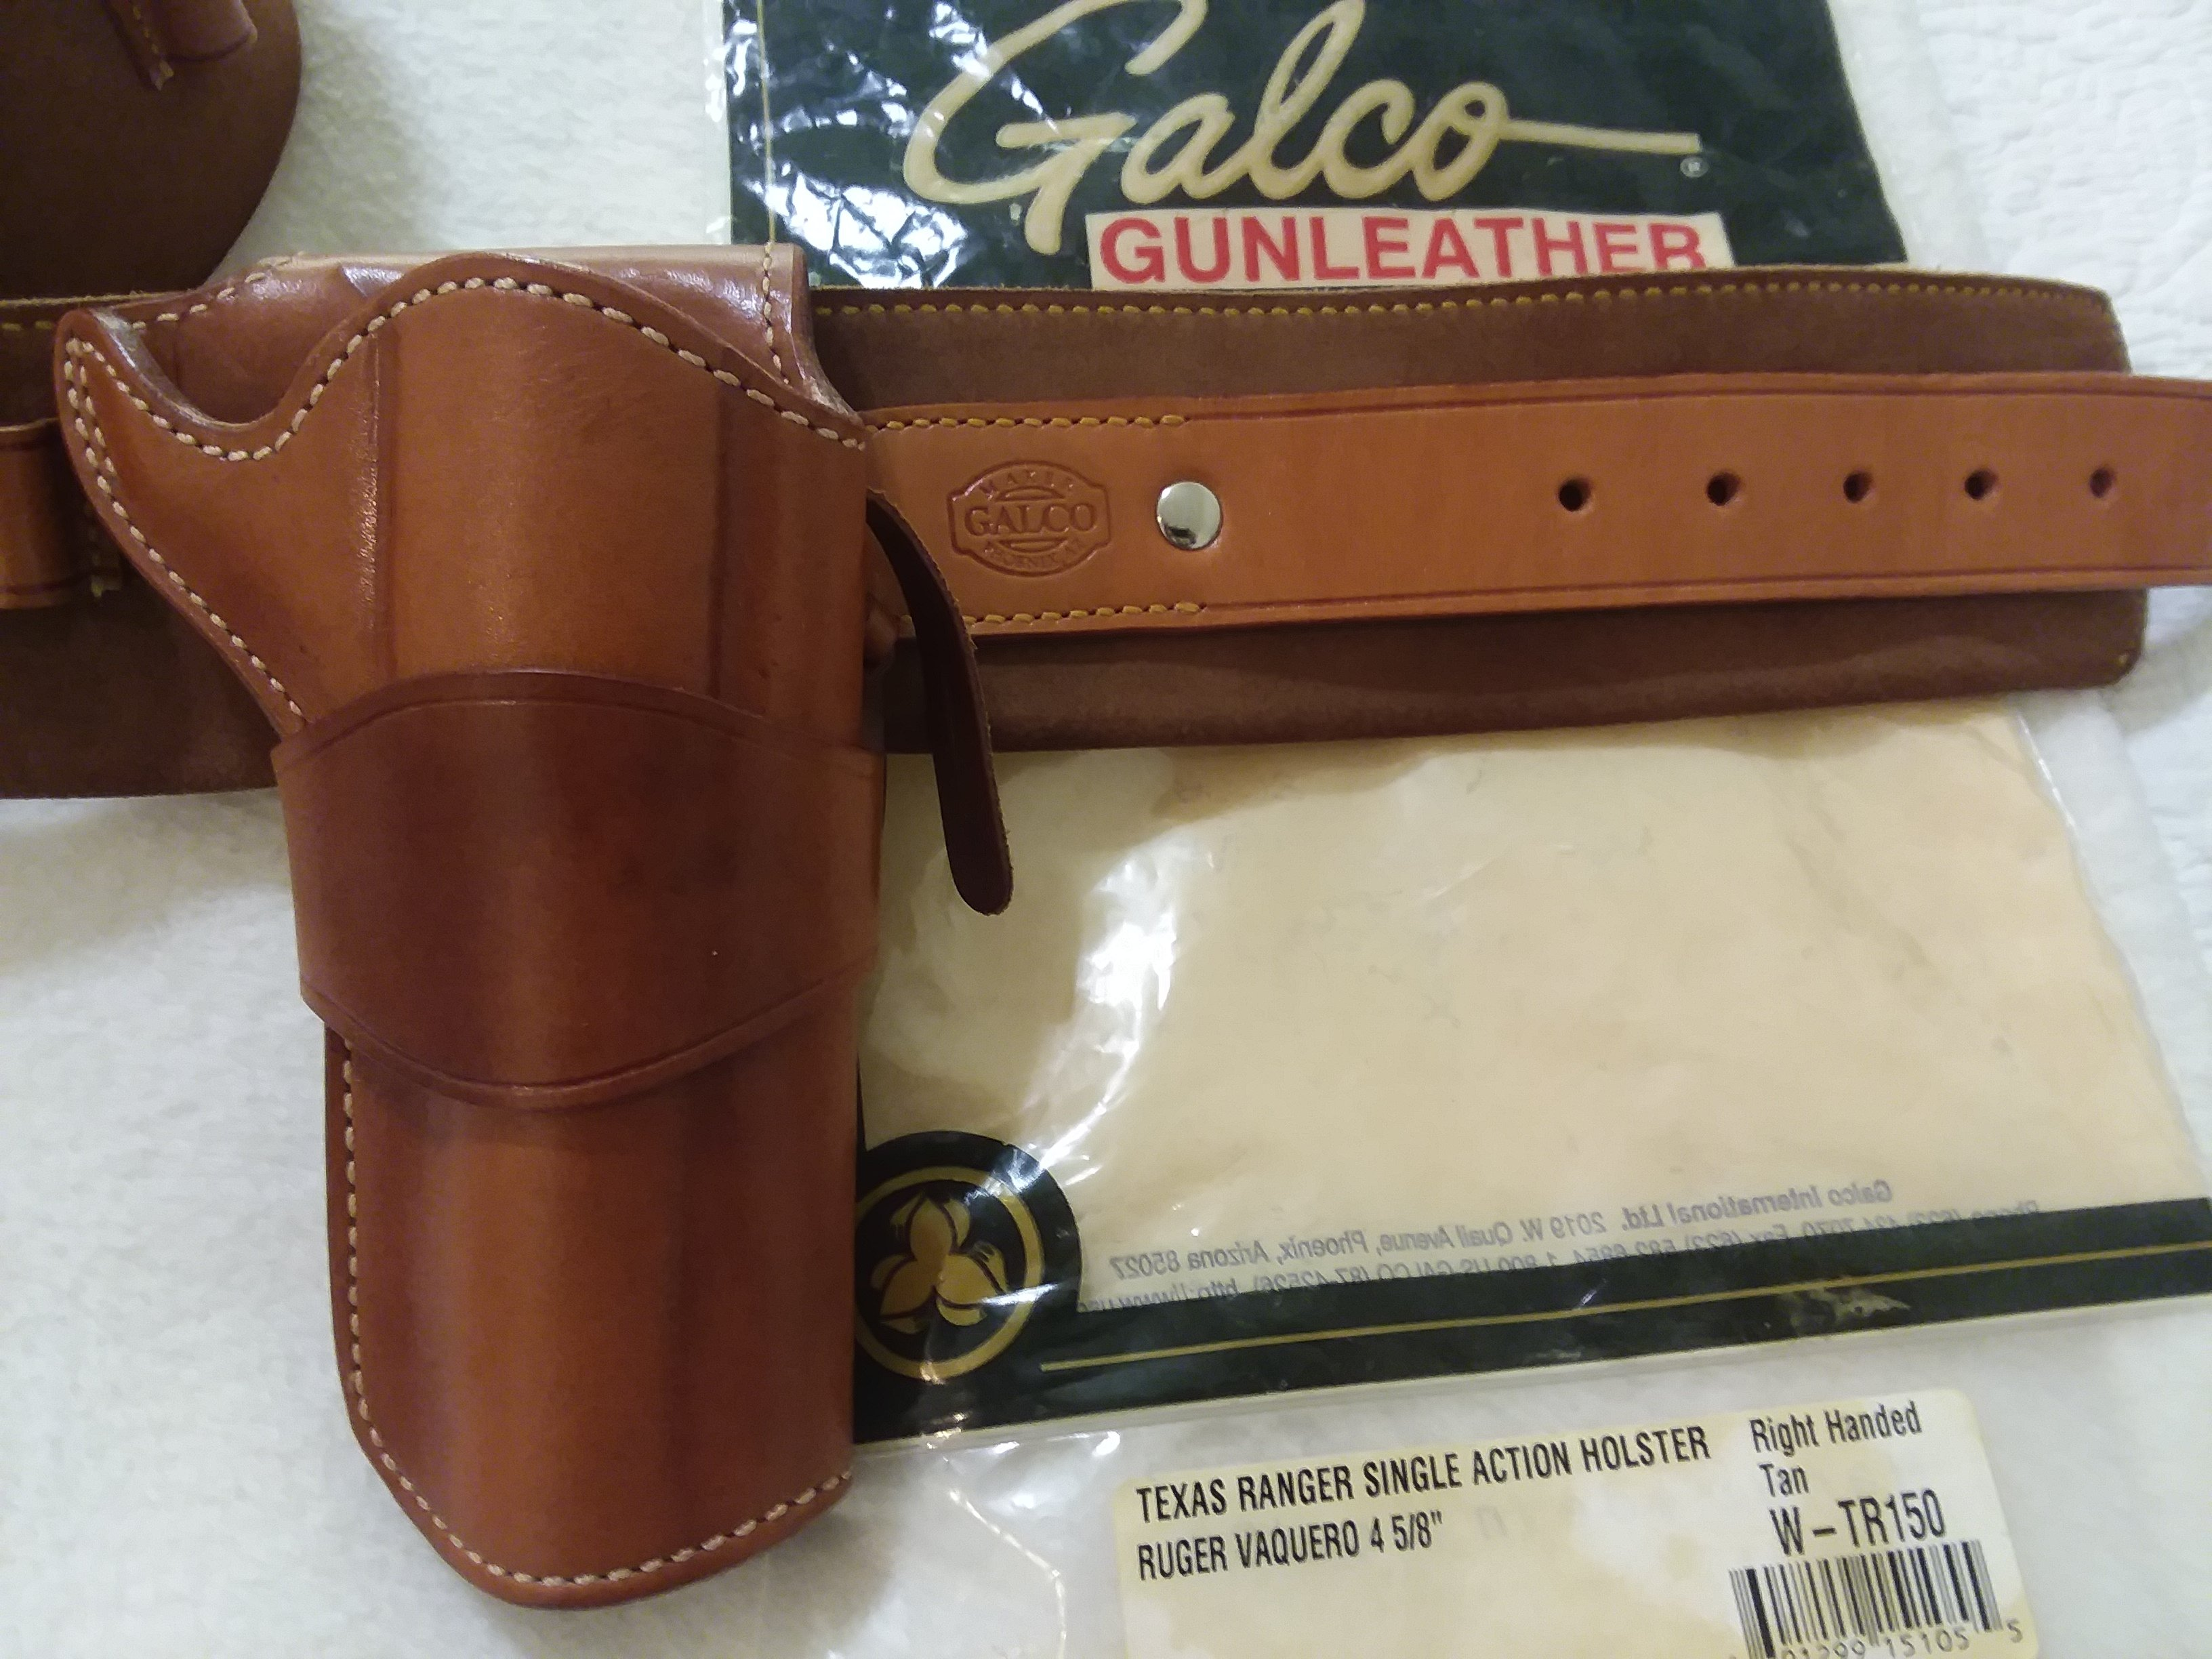 WTB Galco Holster - SASS Wire Classifieds - SASS Wire Forum